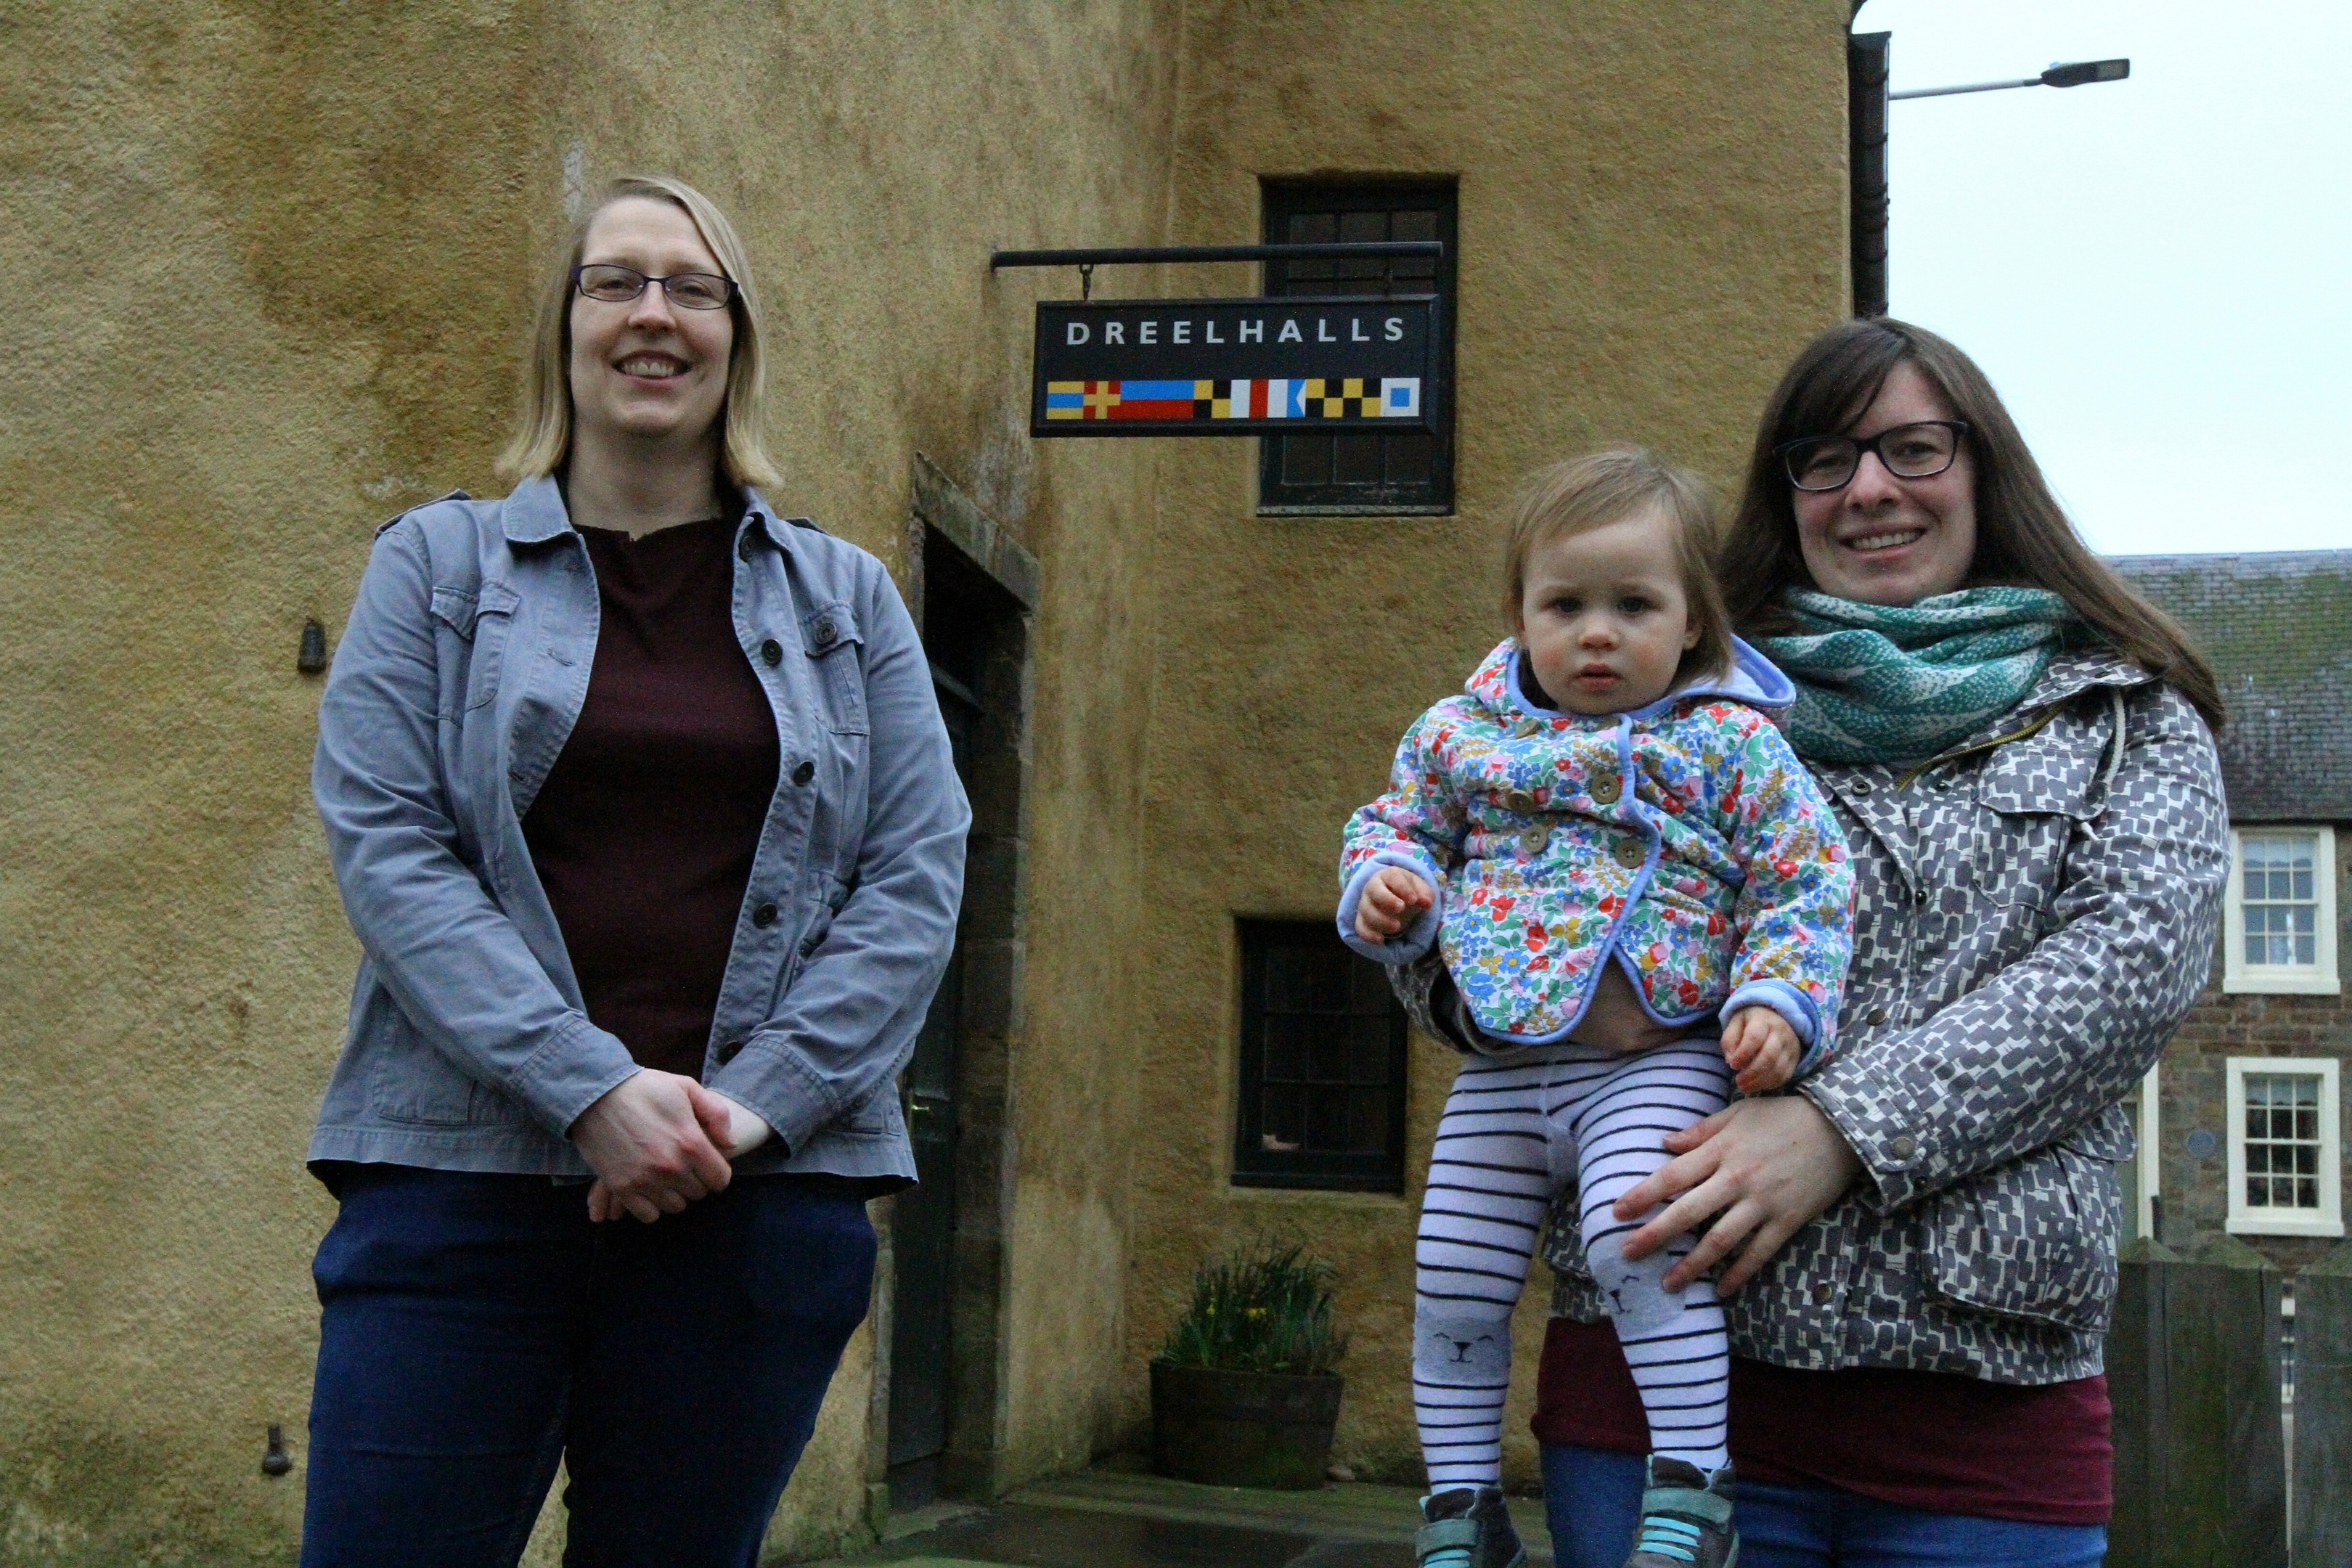 Christine Palmer, left, president of Anstruther Improvements Association, with committee member Chloe Milne and her 18-month-old daughter Robin Ritchie Milne.